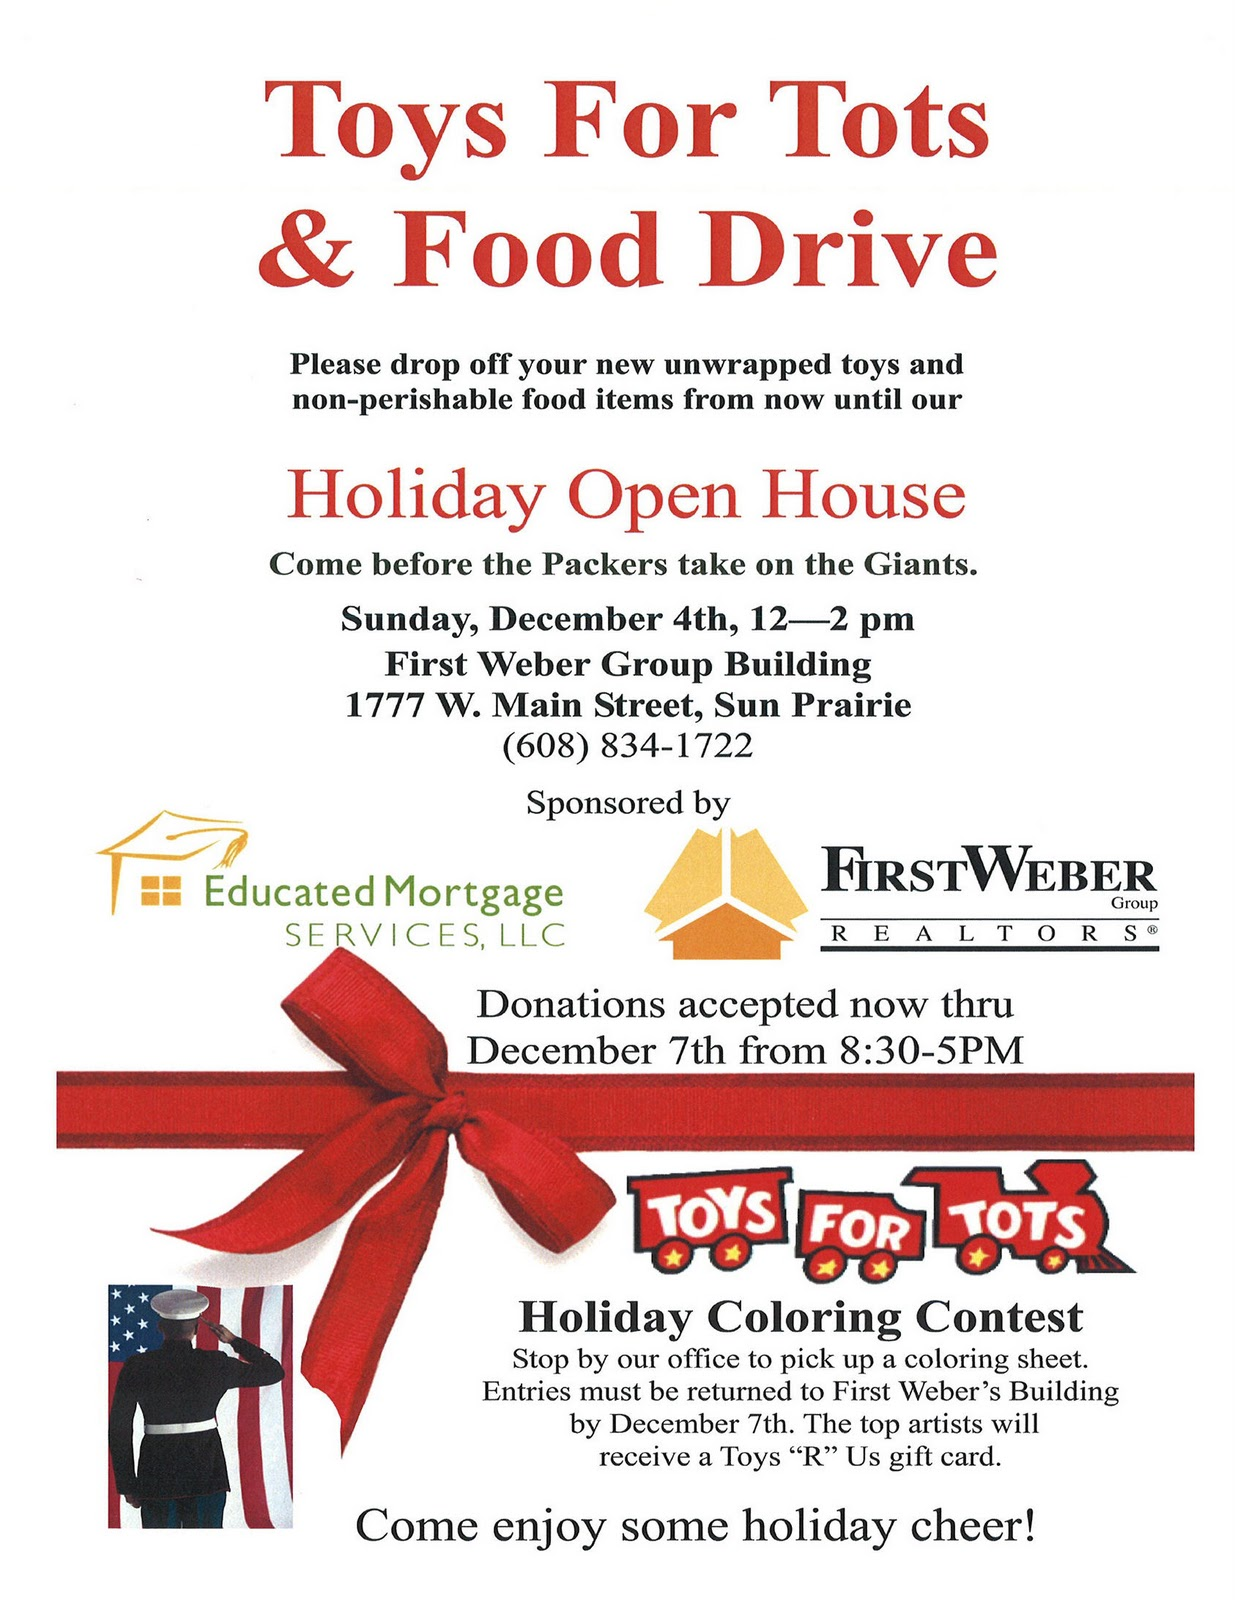 Toys For Tots Food : Economic development news for sun prairie wisconsin